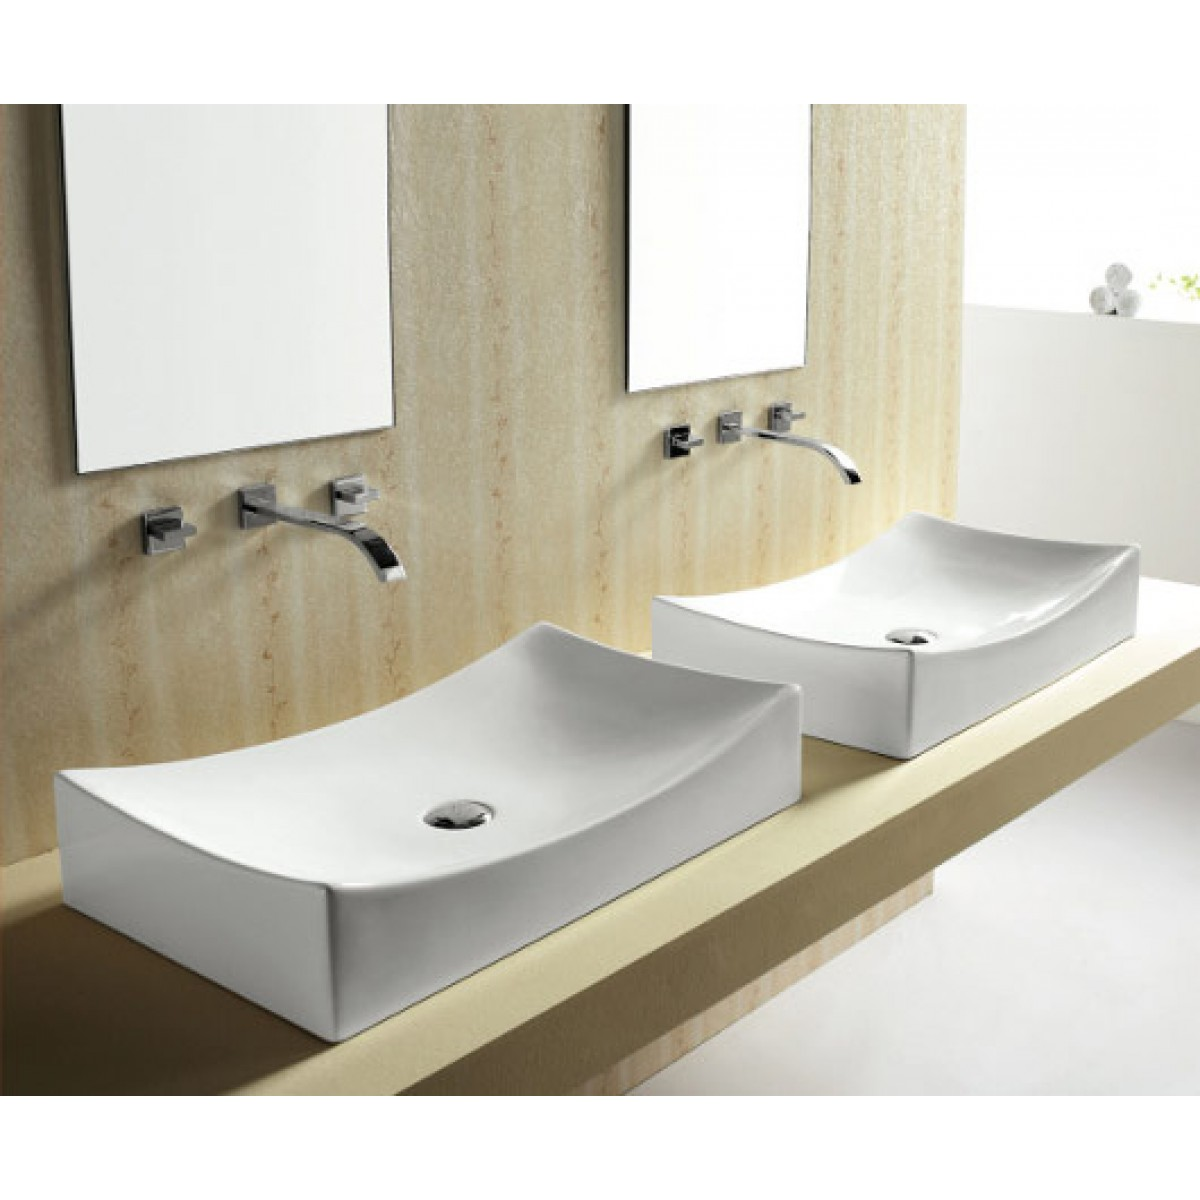 Pictures of bathrooms with vessel sinks - European Style Porcelain Ceramic Countertop Bathroom Vessel Sink 26 X 15 1 2